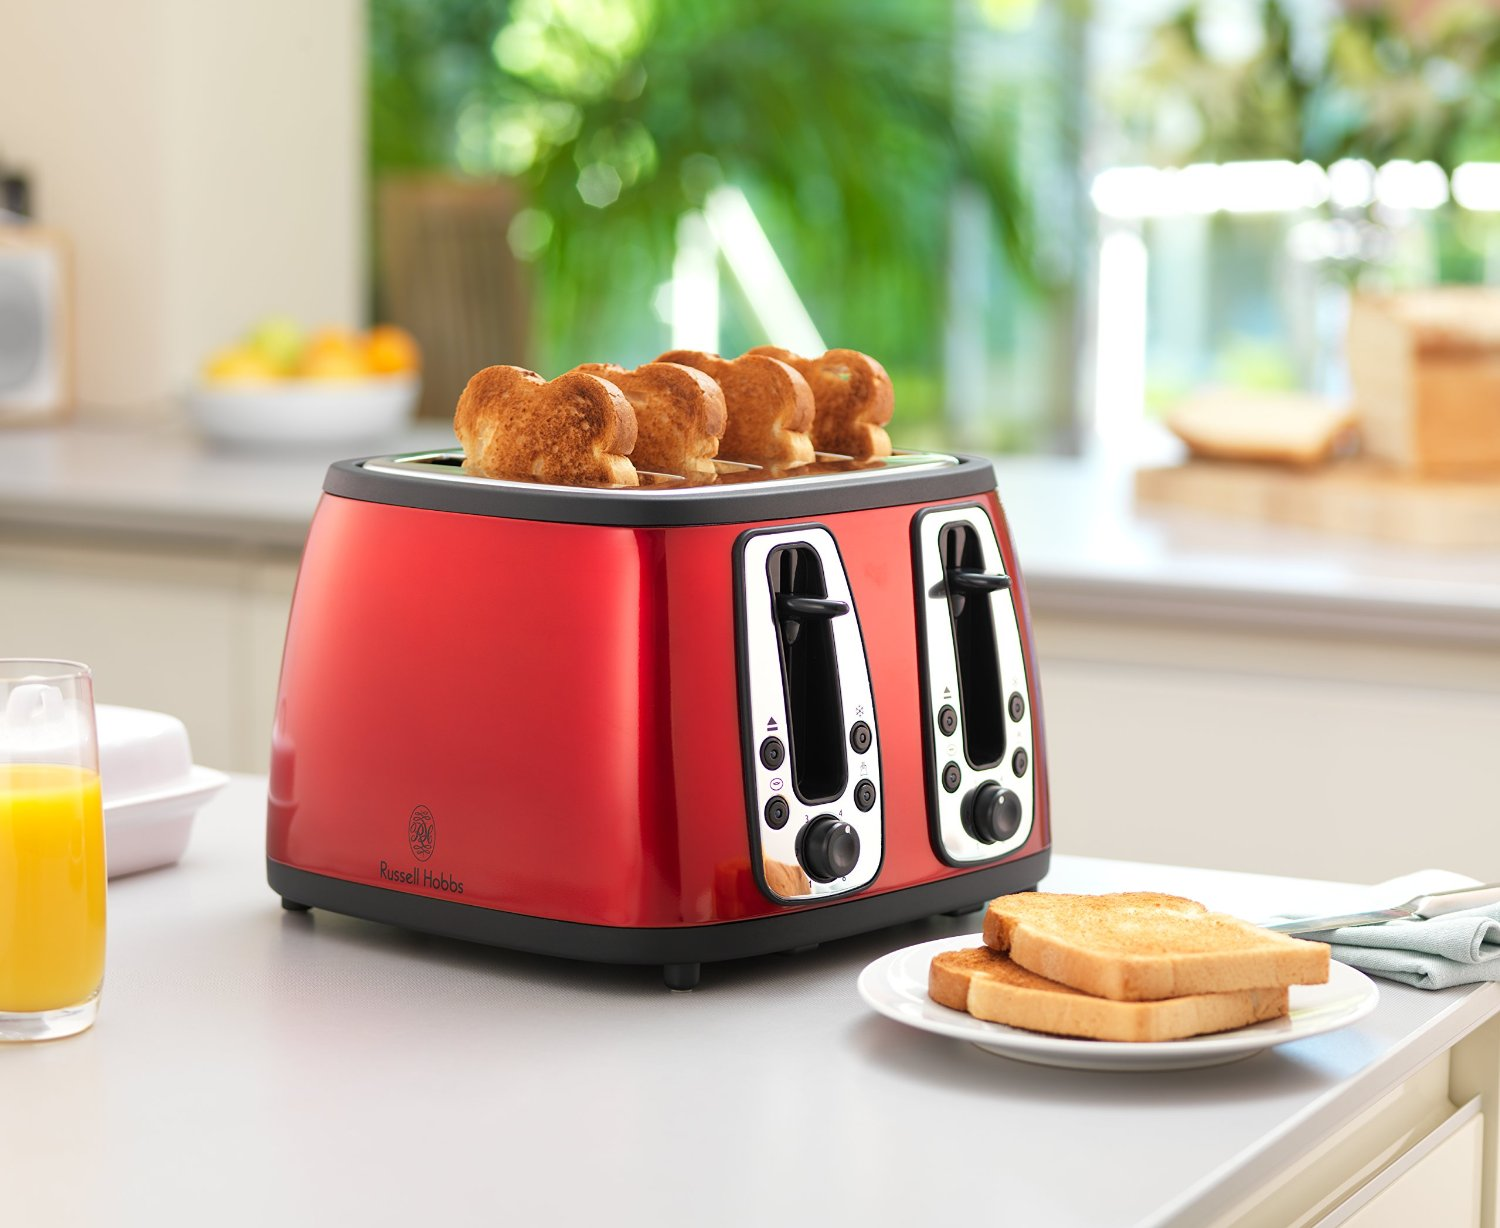 Russell Hobbs Heritage Toaster Review